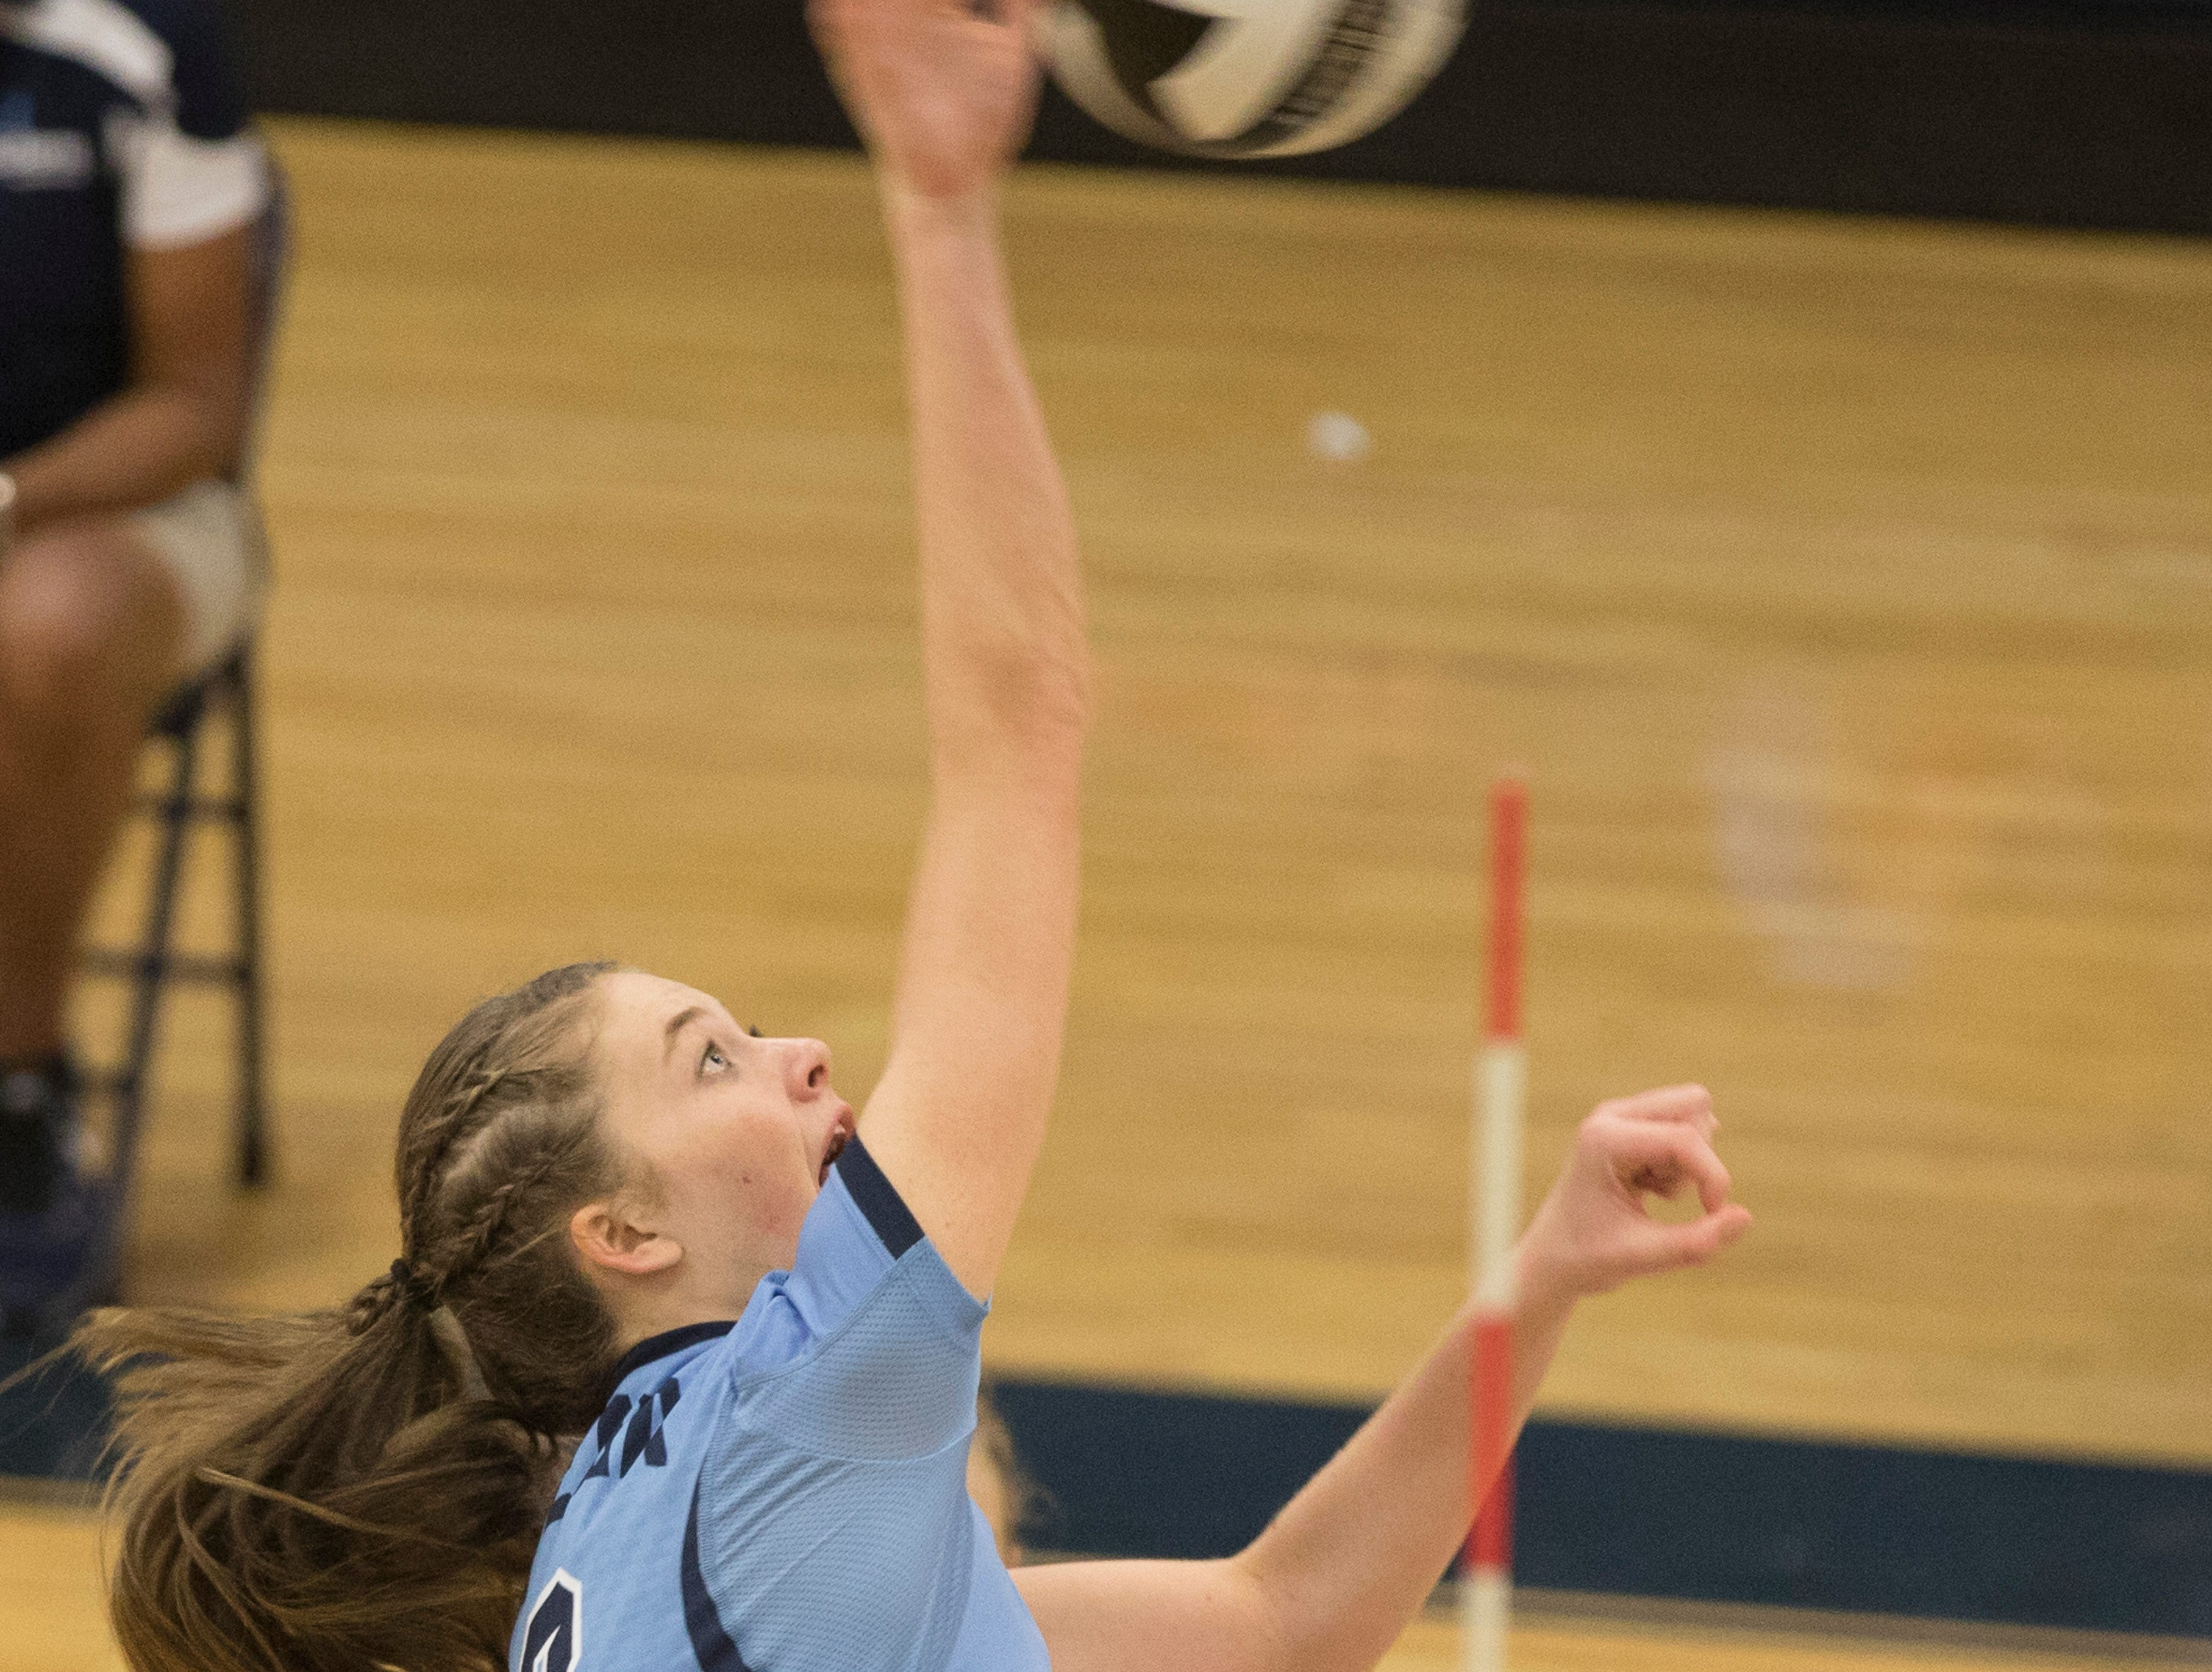 Zane Trace's girls volleyball team defeated Adena 3-0 at Adena High School Tuesday night in Frankfort, Ohio.